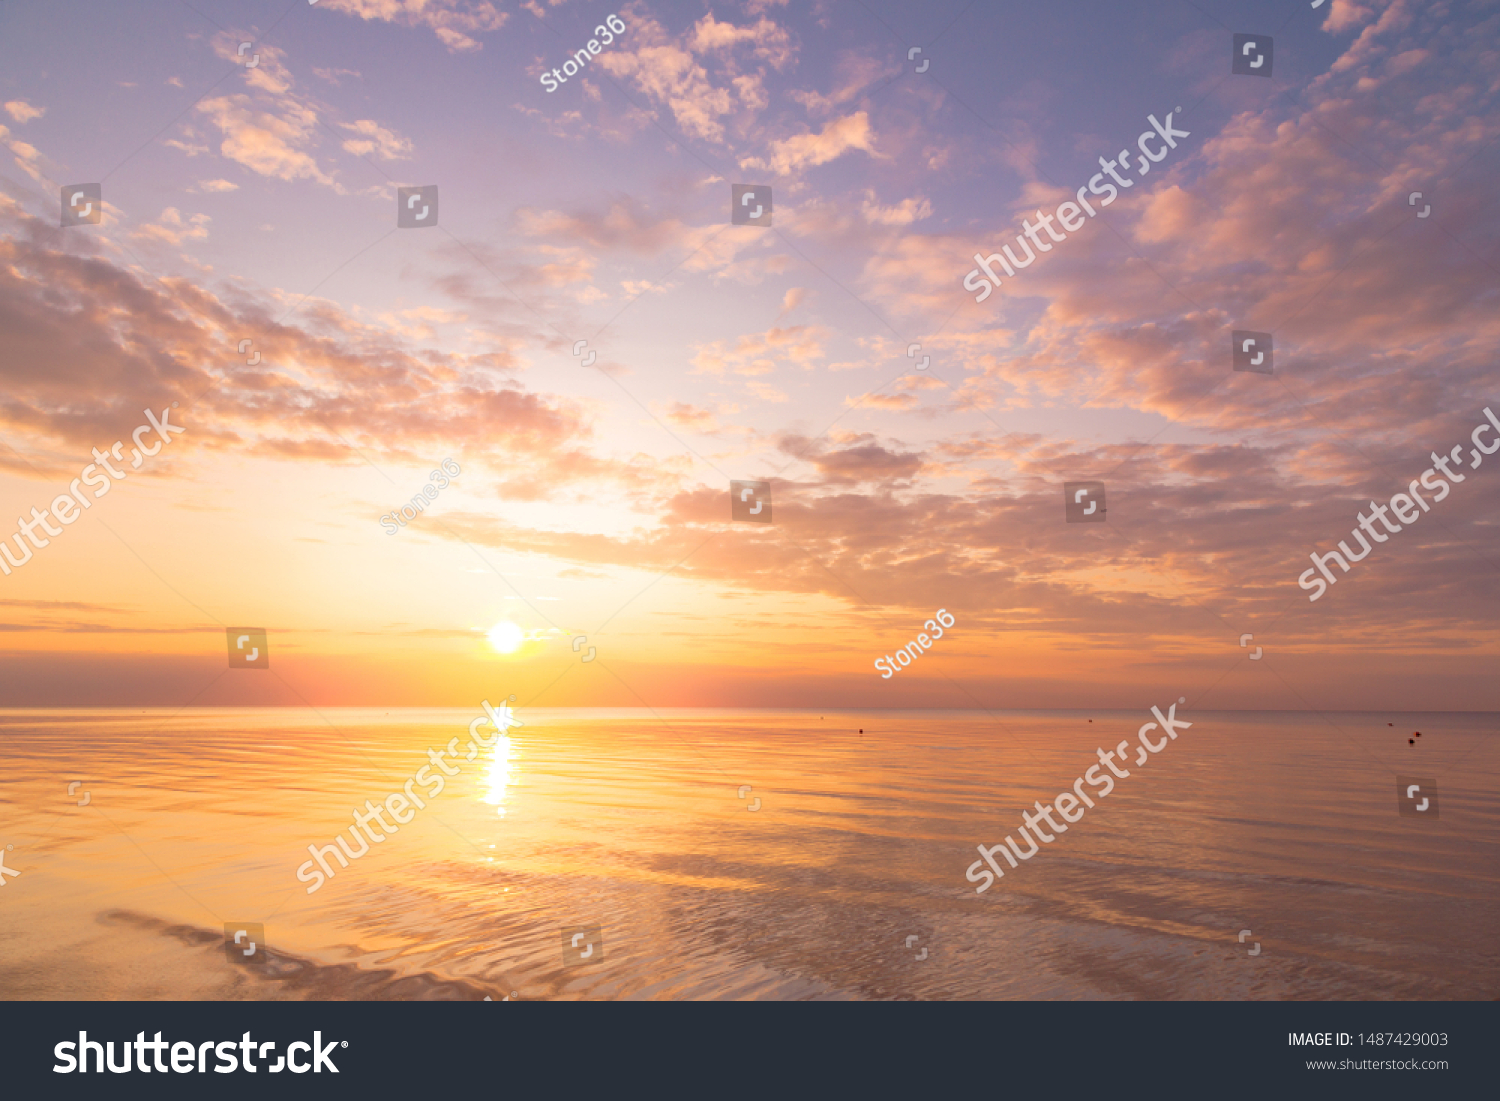 Calm sea with sunset sky and sun through the clouds over. Meditation ocean and sky background. Tranquil seascape. Horizon over the water. #1487429003